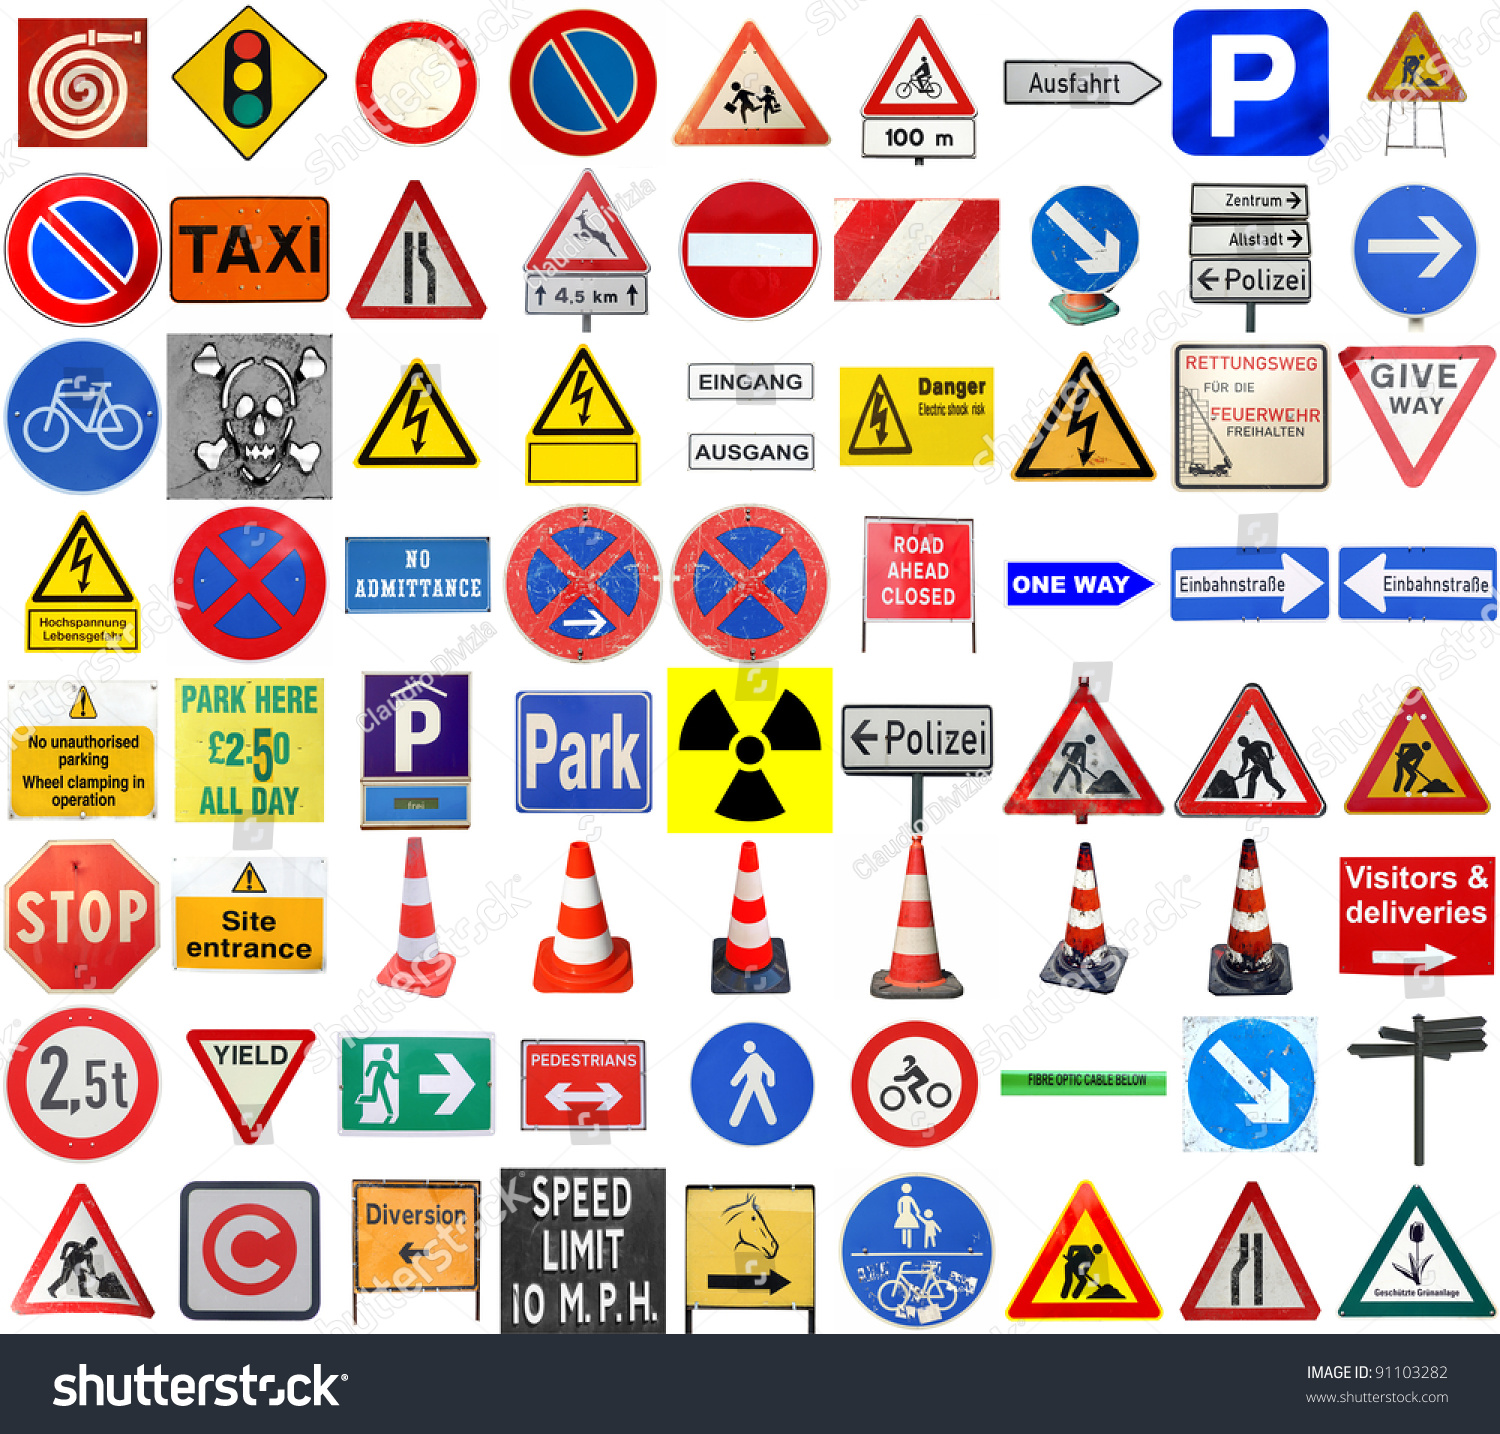 road signs in english Warning signs and signs giving orders information signs special and supplemental signs road expert information traffic signs in germany.